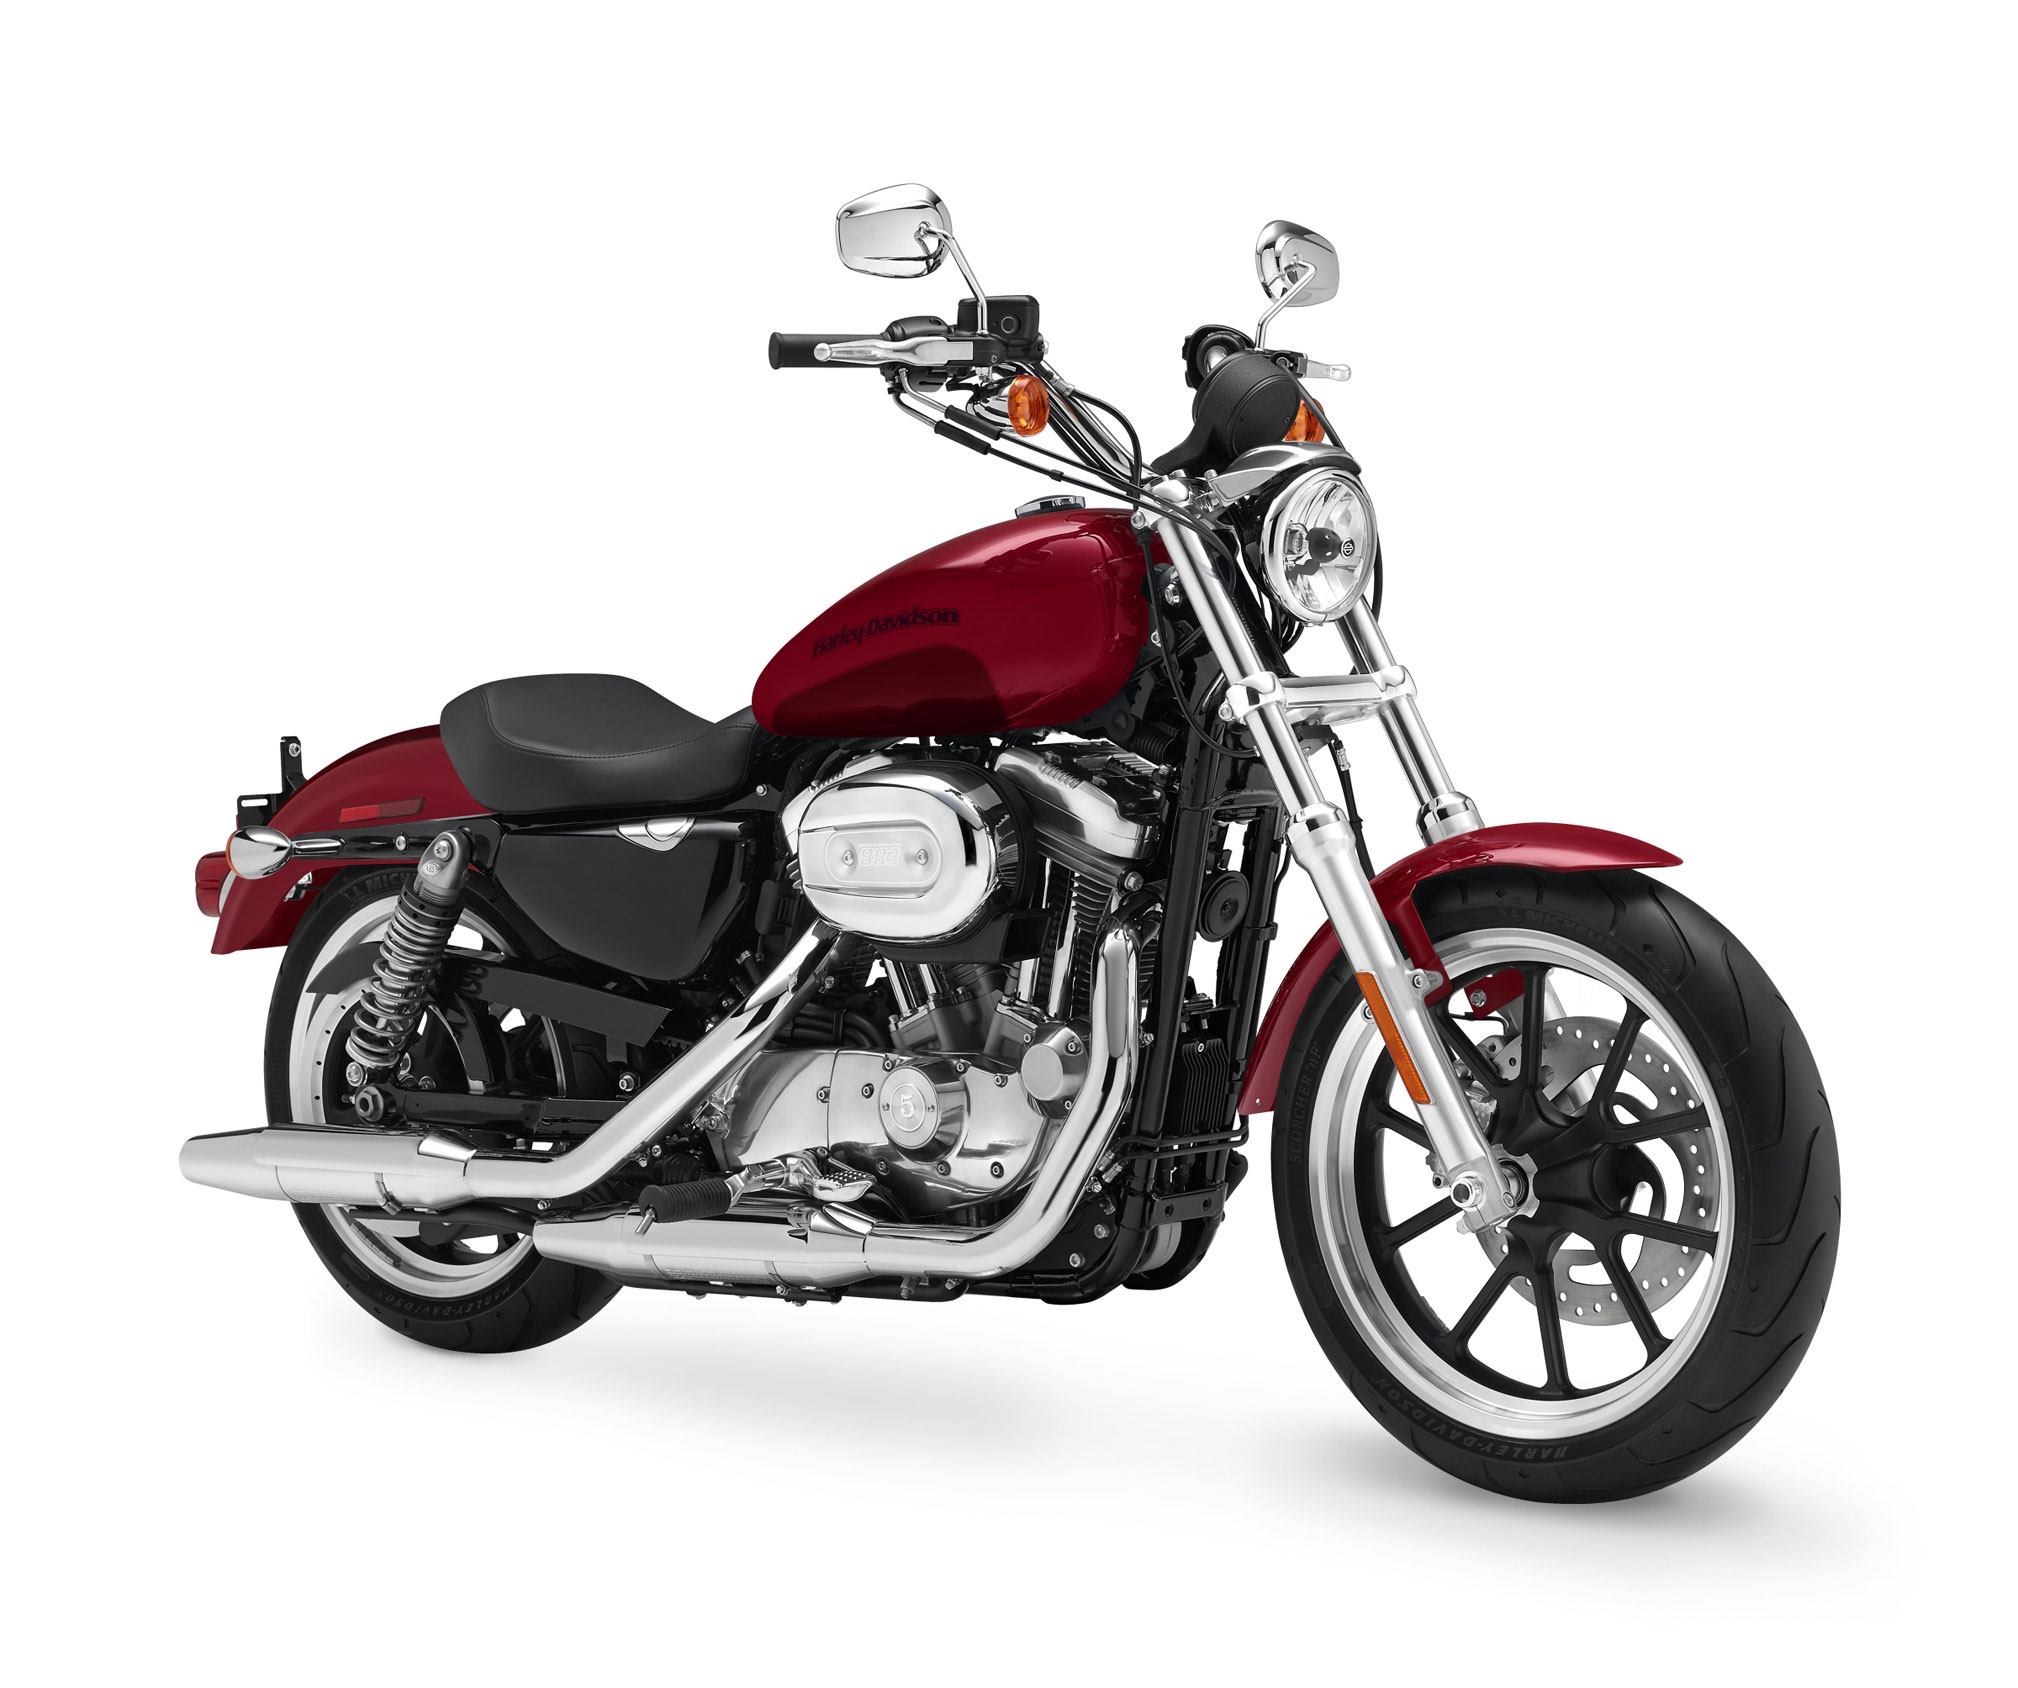 Harley Davidson Sportster Xll Superlow Review